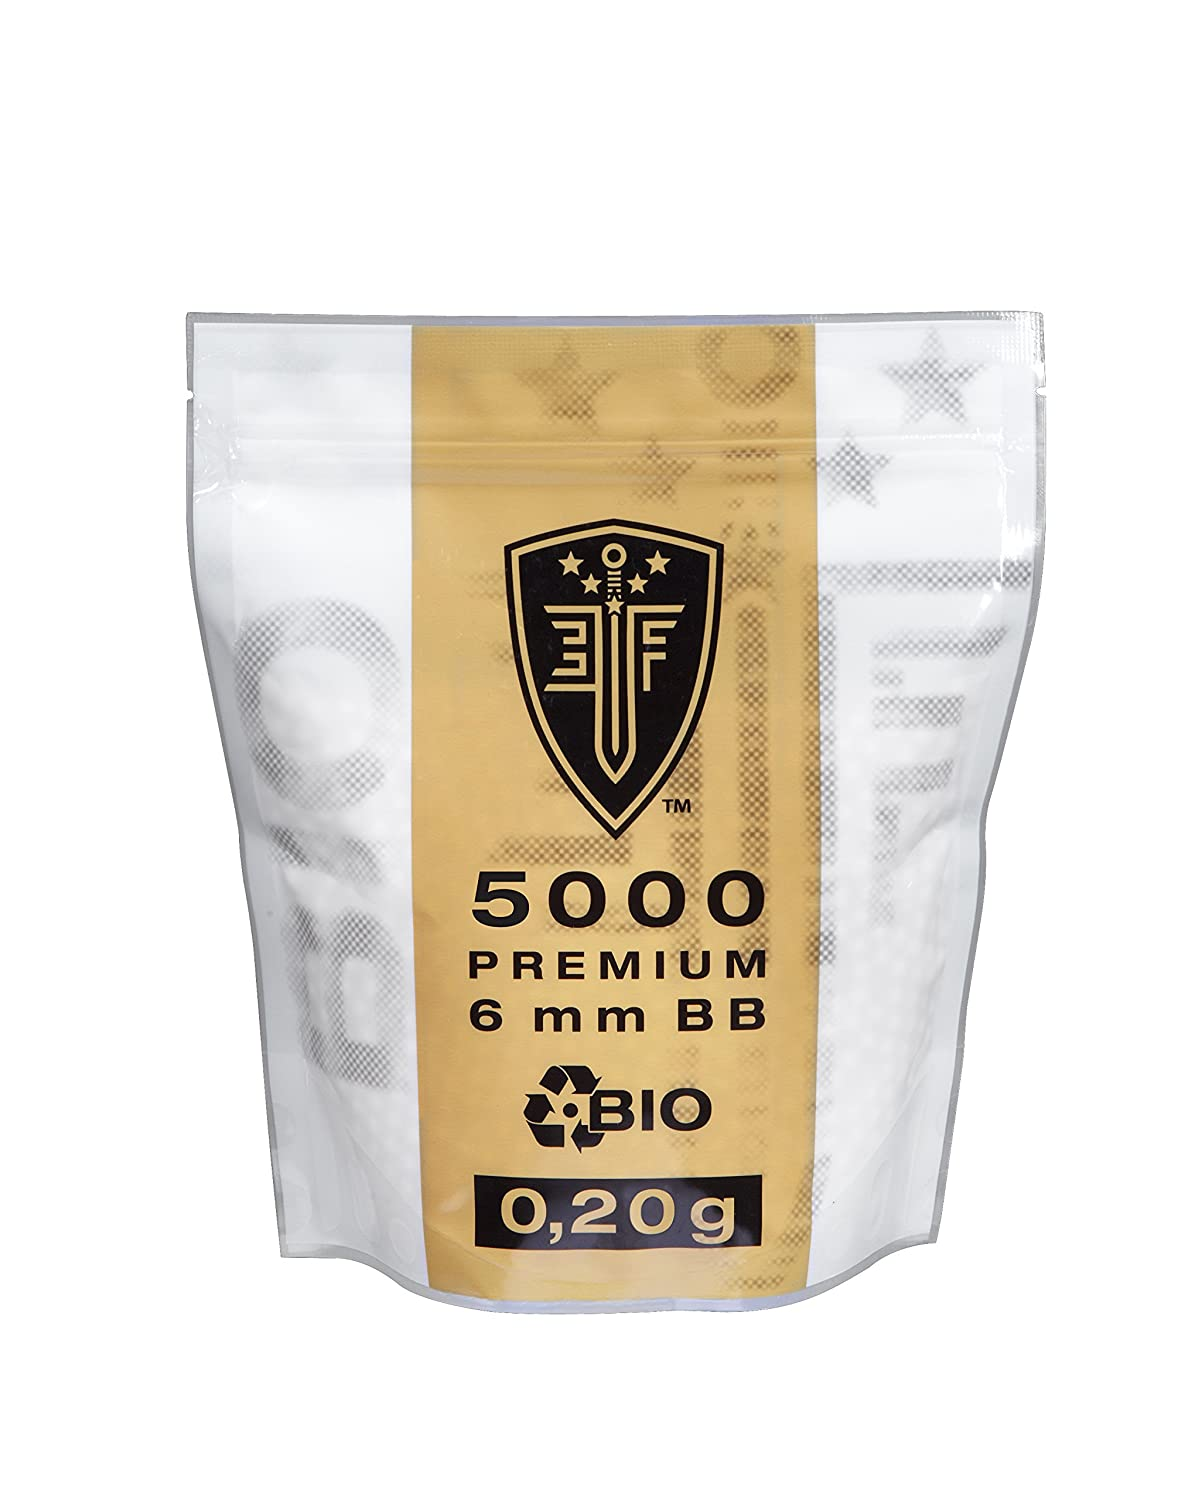 Elite Force Softair Ammunition Bio BBs – 0.20 g 6 mm 5.000 pcs. Zipper Bag 26100